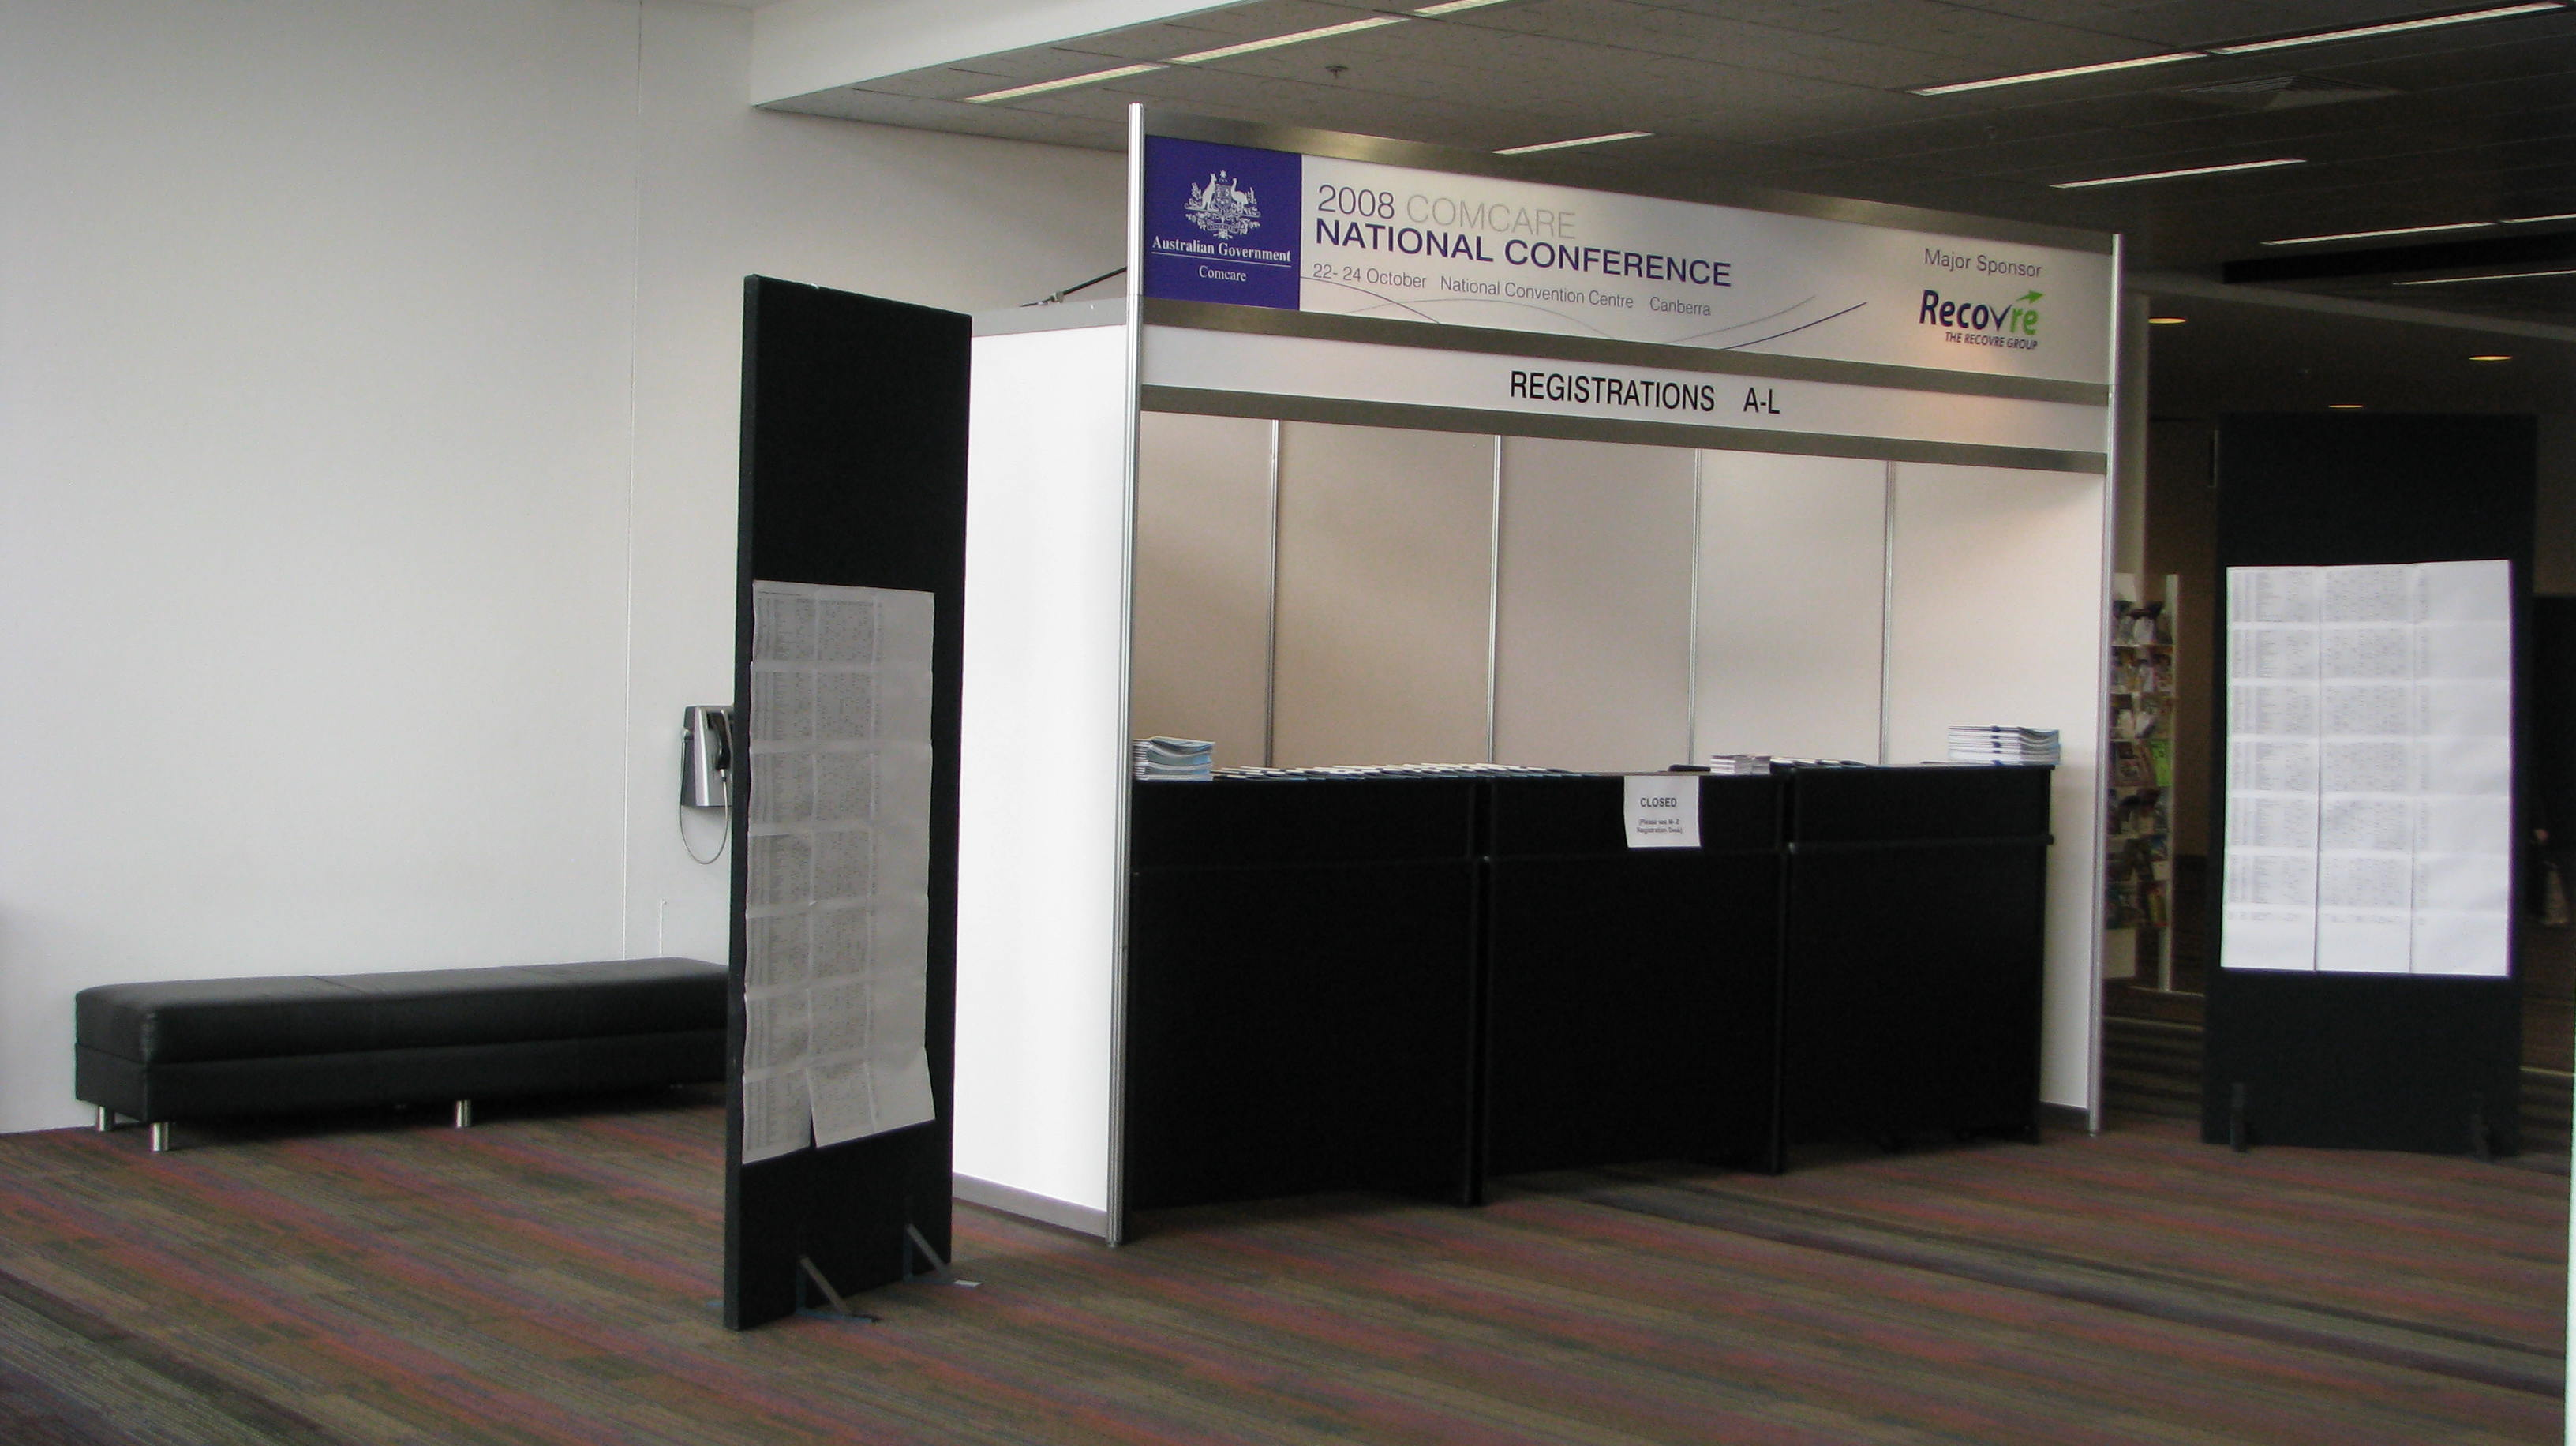 Registration Booth 1